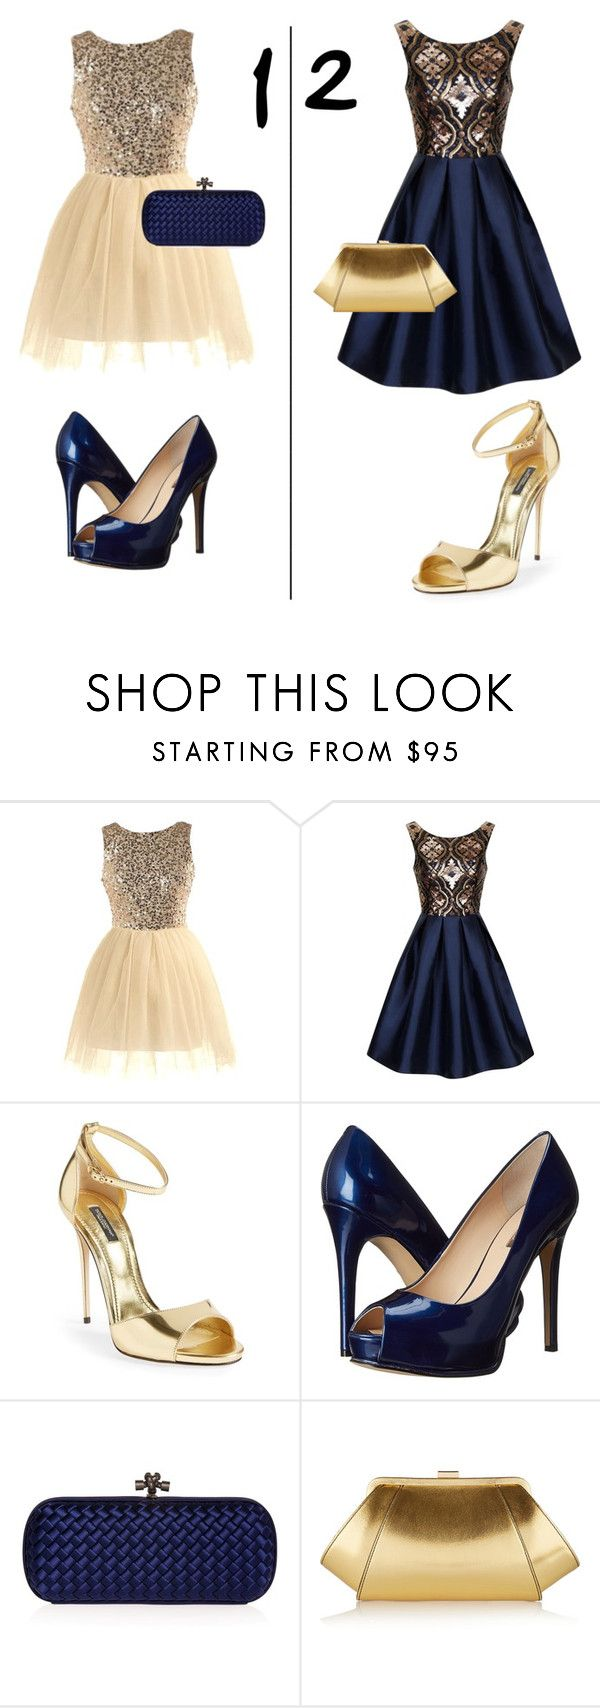 """Gold/blue evening dress preference"" by cheerleader7avag ❤ liked on Polyvore featuring Chi Chi, Dolce&Gabbana, GUESS, Bottega Veneta, ZAC Zac Posen and ava_grace_contests"